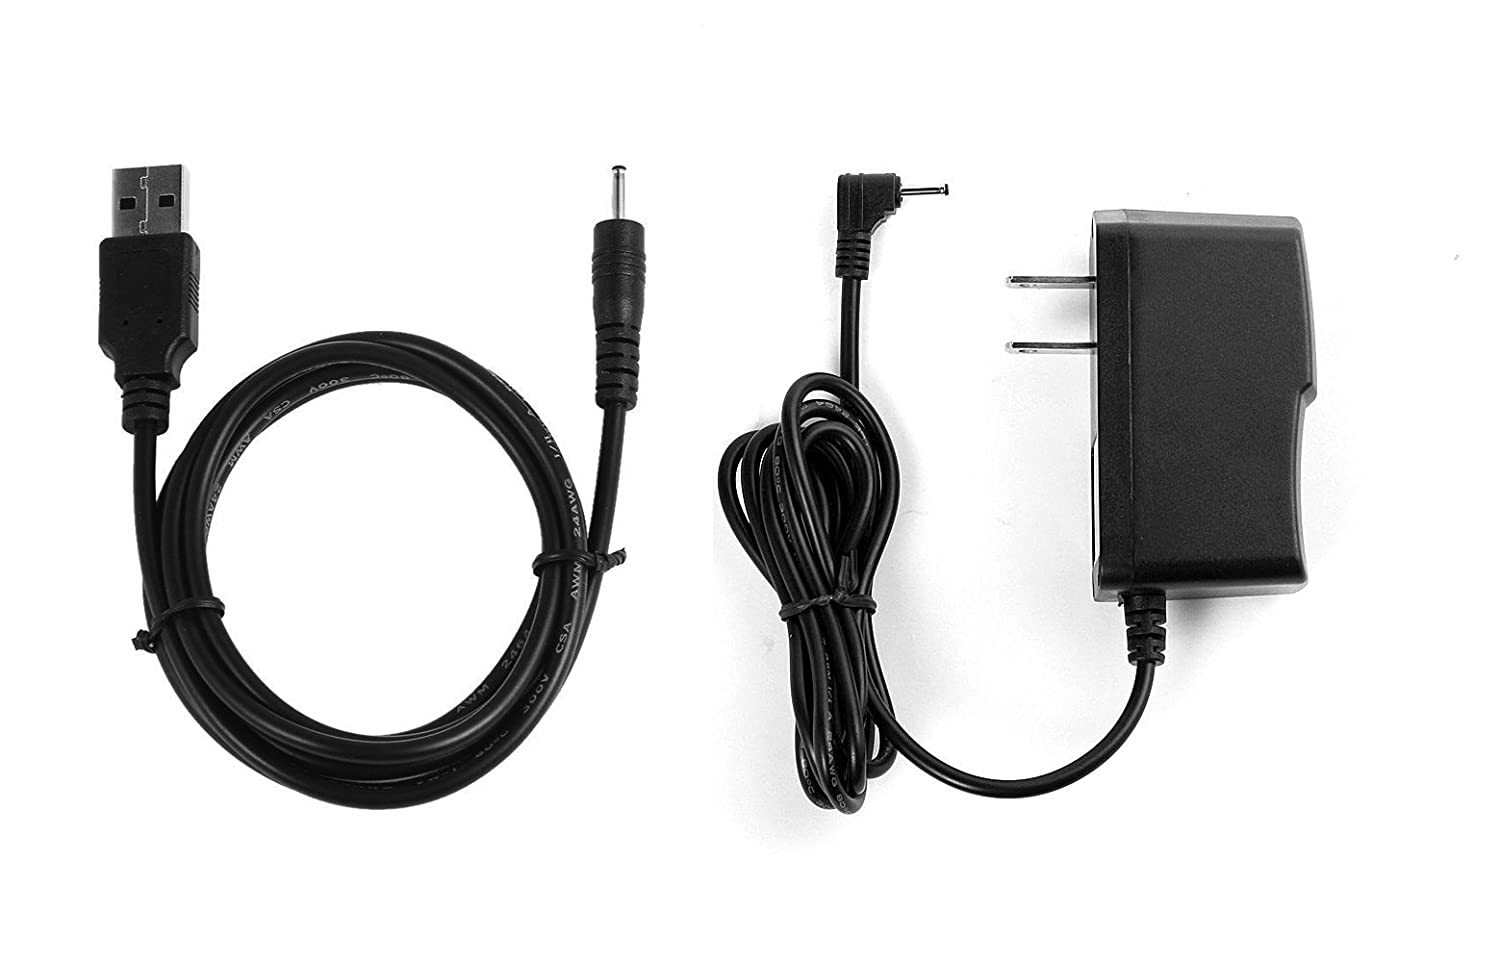 NiceTQ Replacement Home Wall AC Power Adapter Charger + DC USB Charging Cable For RCA 10 VIKING PRO RCT6303W87 / RCT6303W87DK 10' Tablet